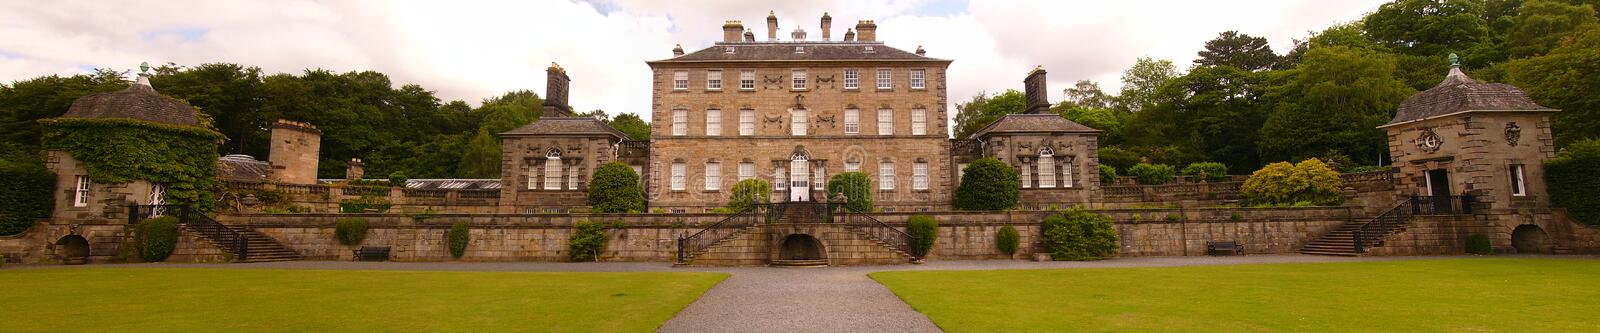 Manor House. In a park in Glasgow, Scotland royalty free stock photos